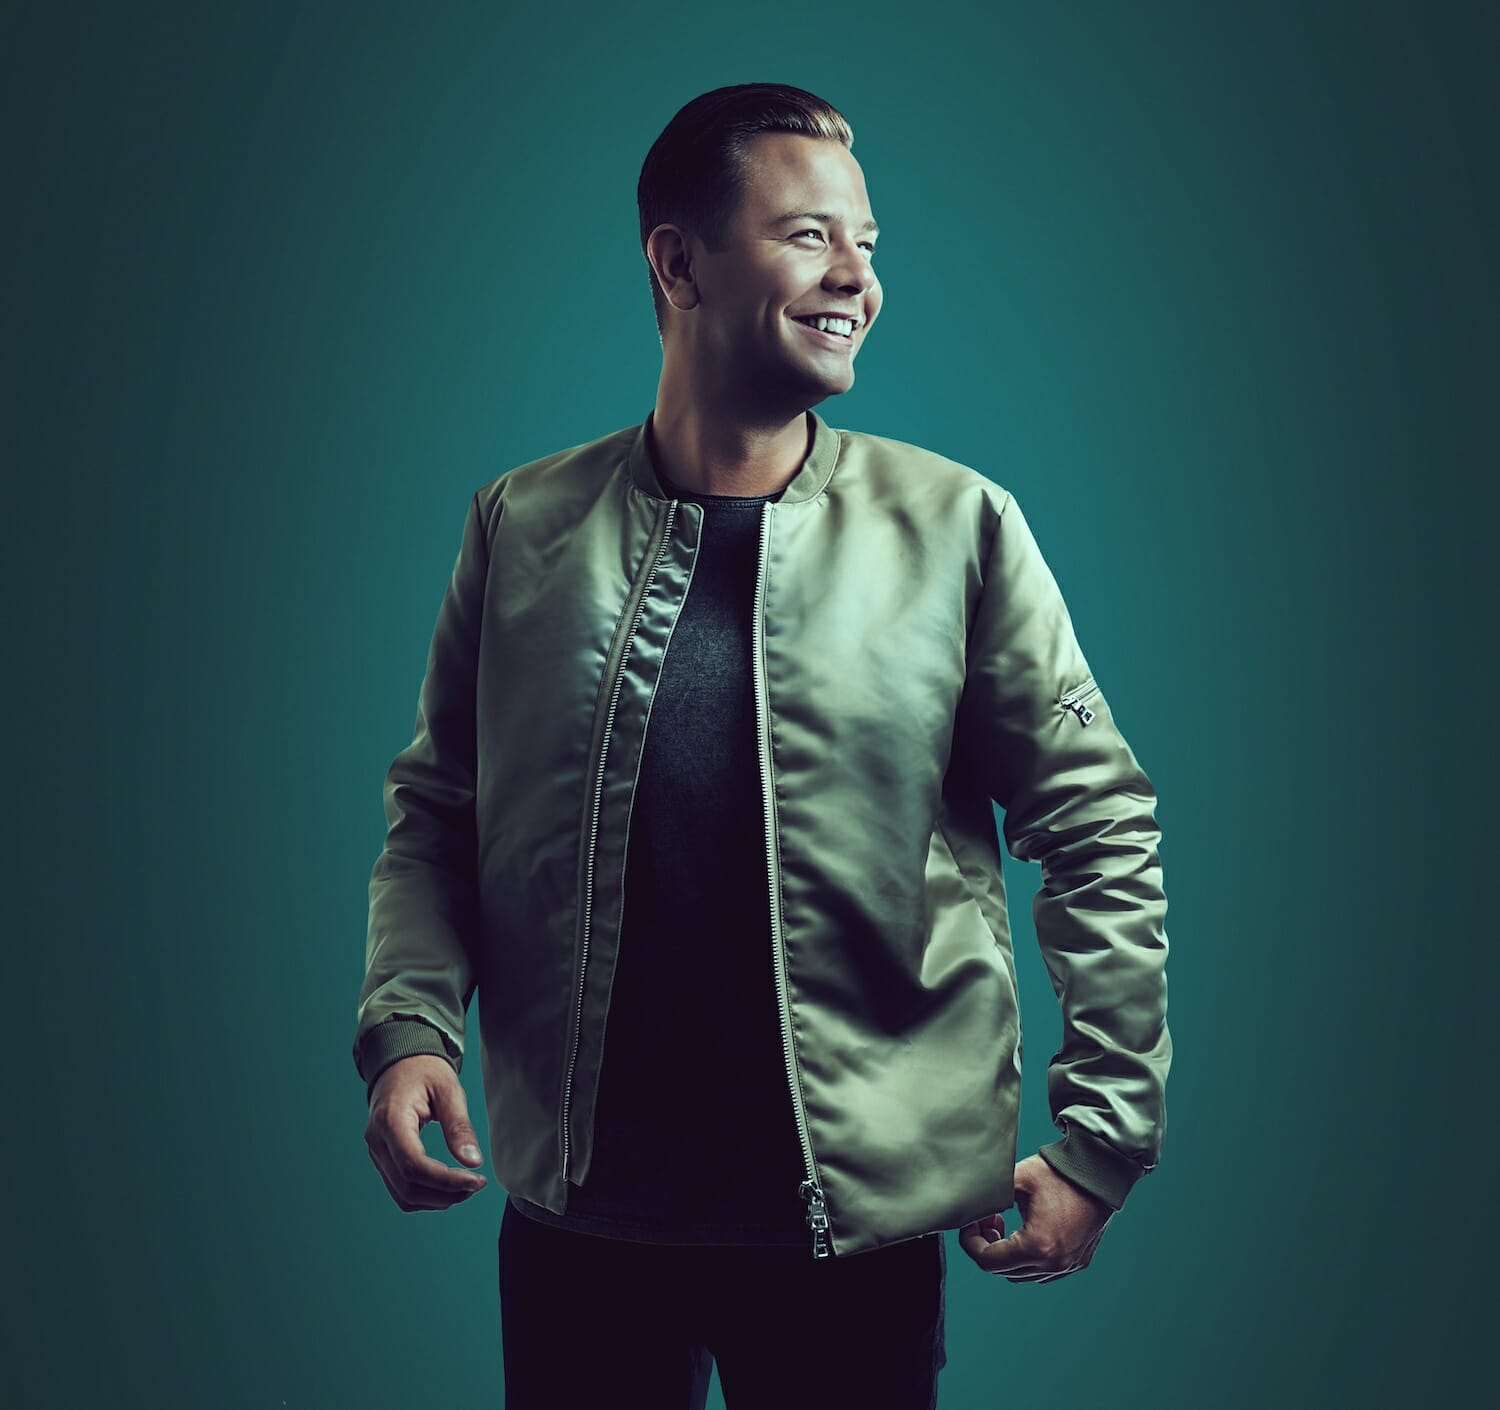 Beyond The Booth 012: Sam Feldt on sustainable living, remaining eco-friendly on the road, & how the smallest changes can make the biggest differenceSam Feldt Social Media